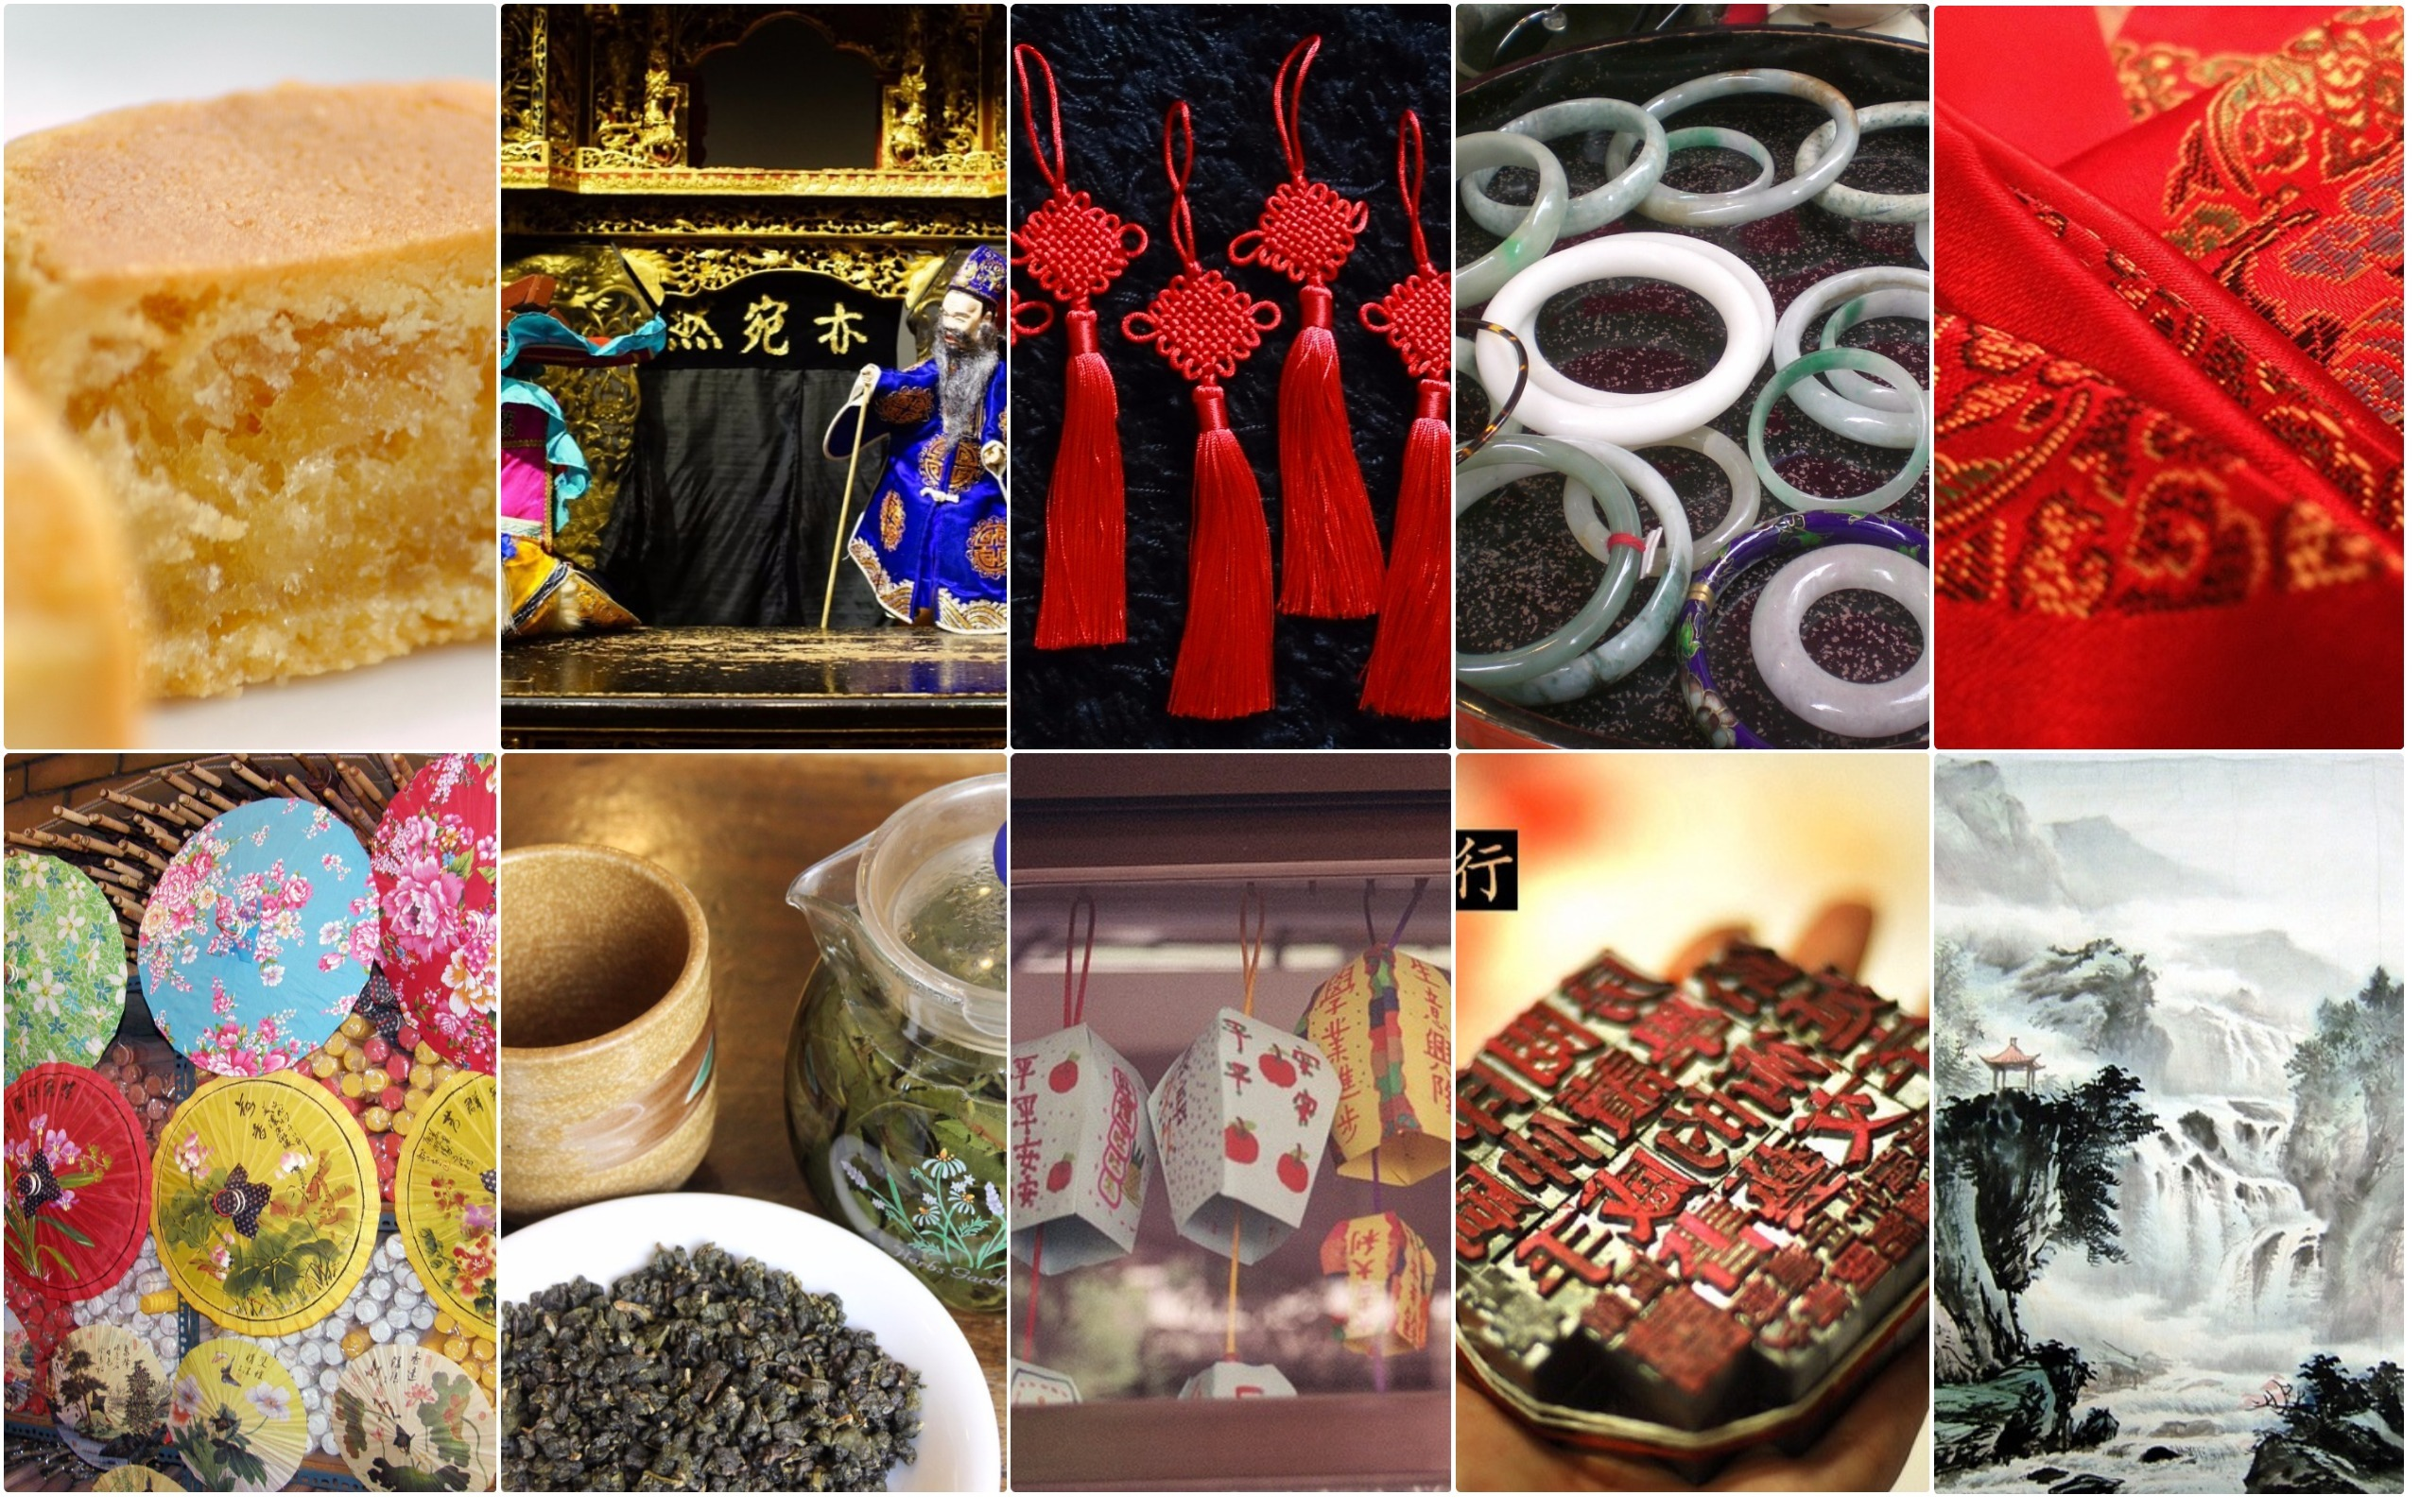 Top 10 souvenirs to buy in Taipei.